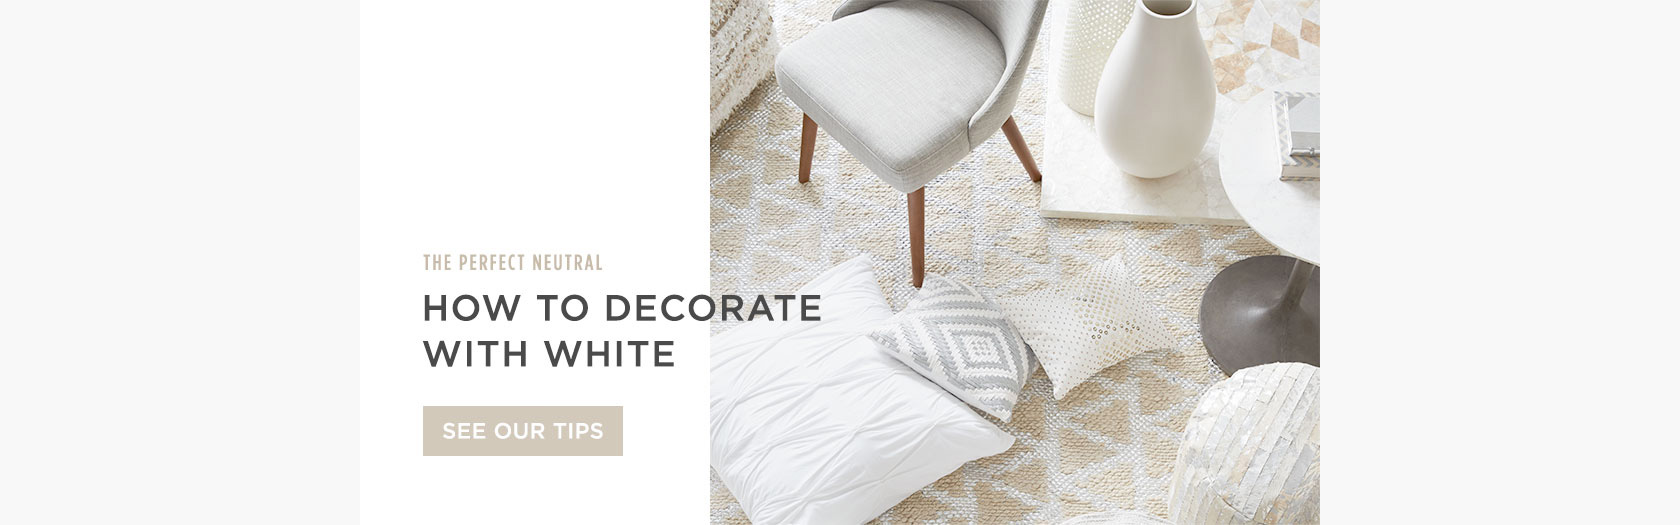 How To Decorate With White - See Our Tips